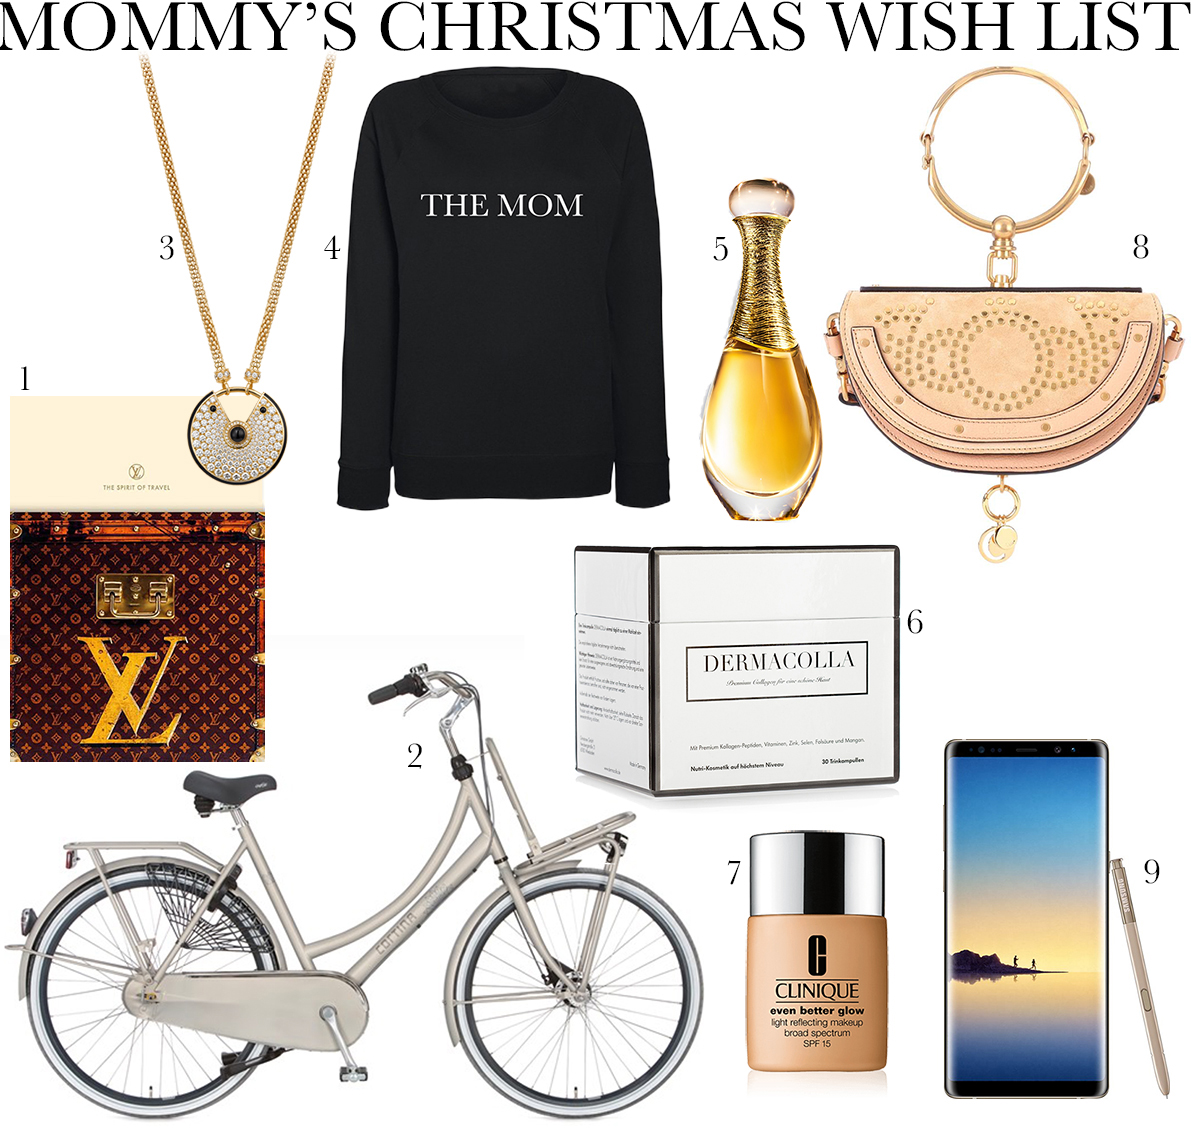 the-mom-mommys-christmas-wish-list-cortina